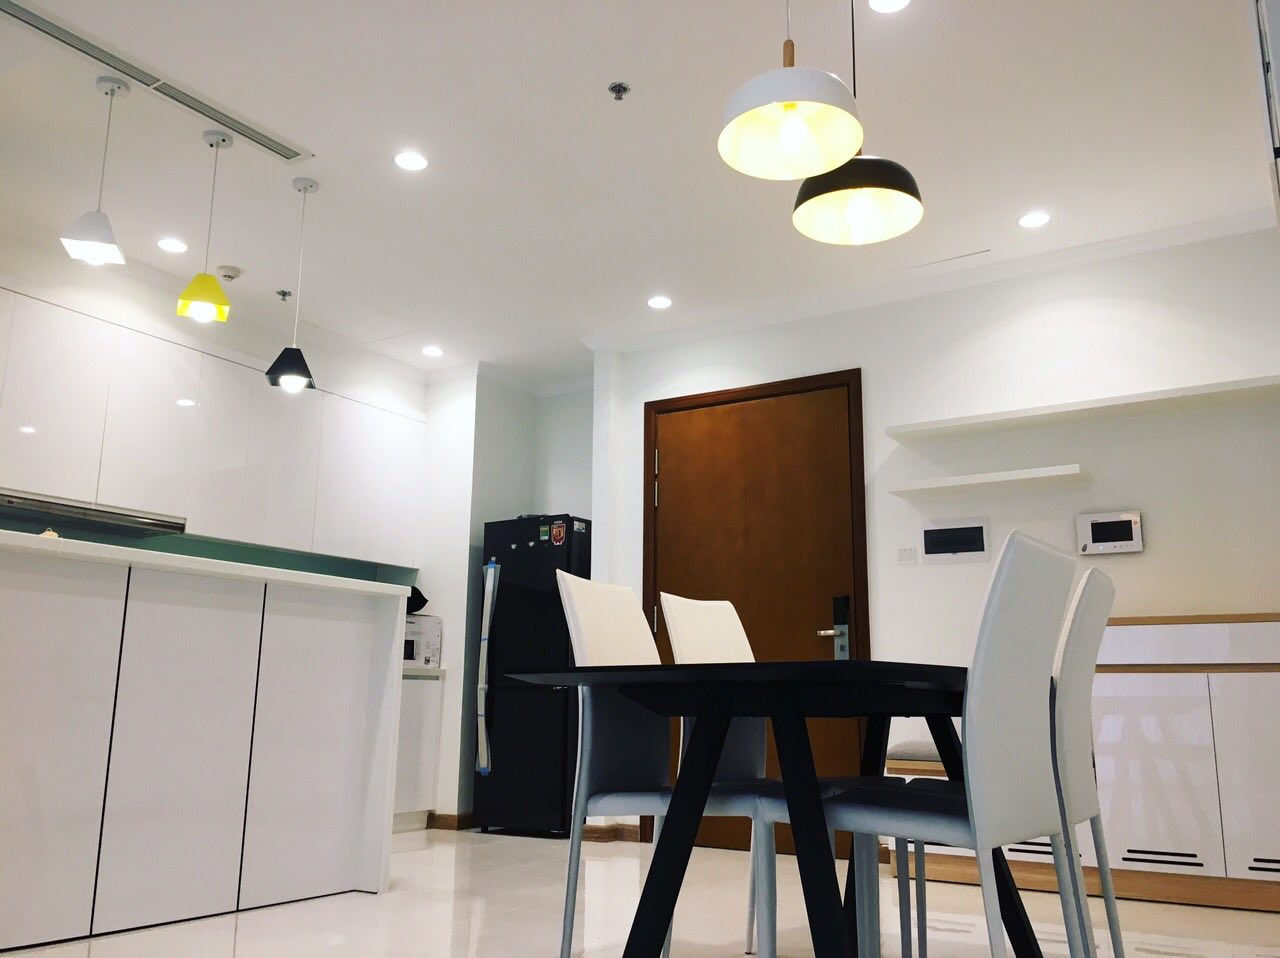 BT105020 - Vinhomes Central Park Apartments For Rent & Sale In Ho Chi Minh City - 2 bedroom